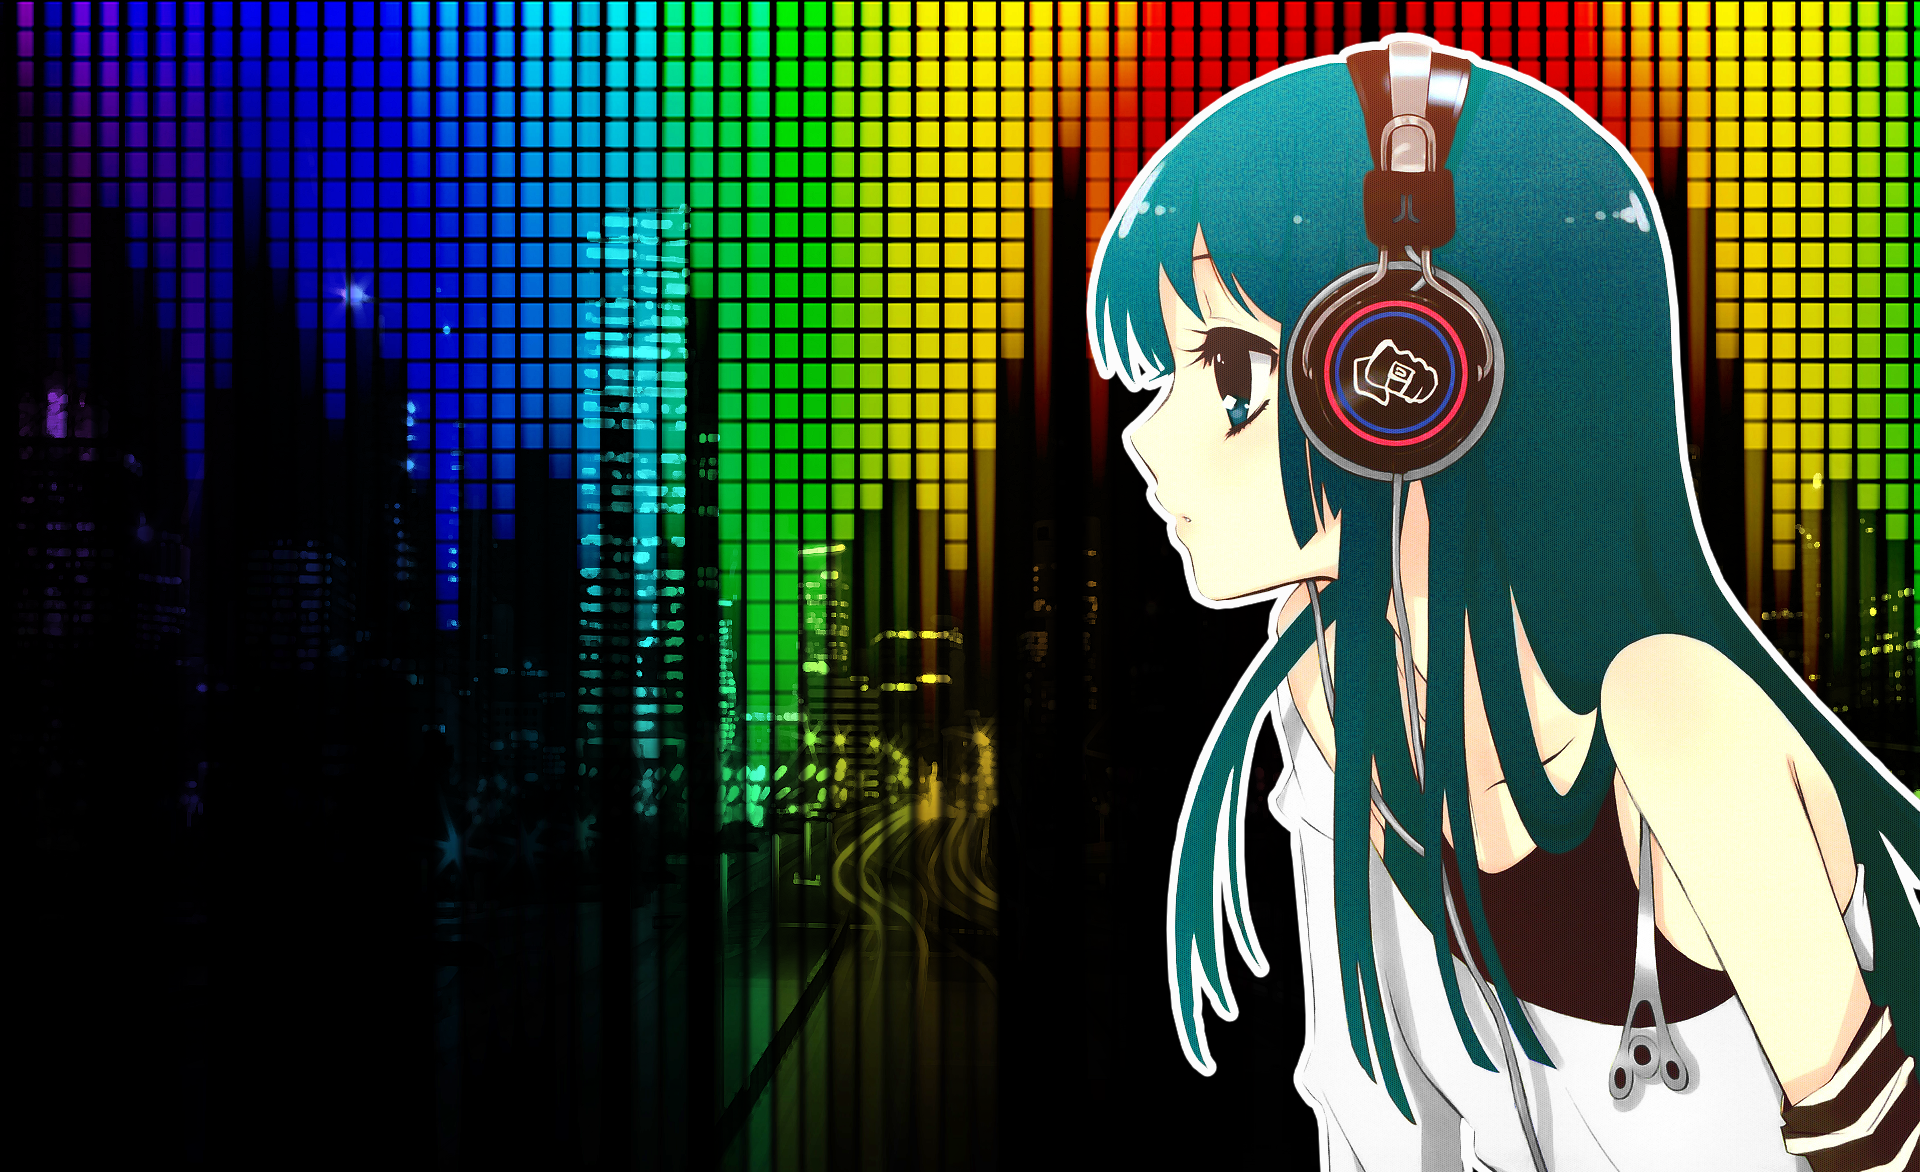 Anime music Wallpaper by Mrlolwoop on DeviantArt